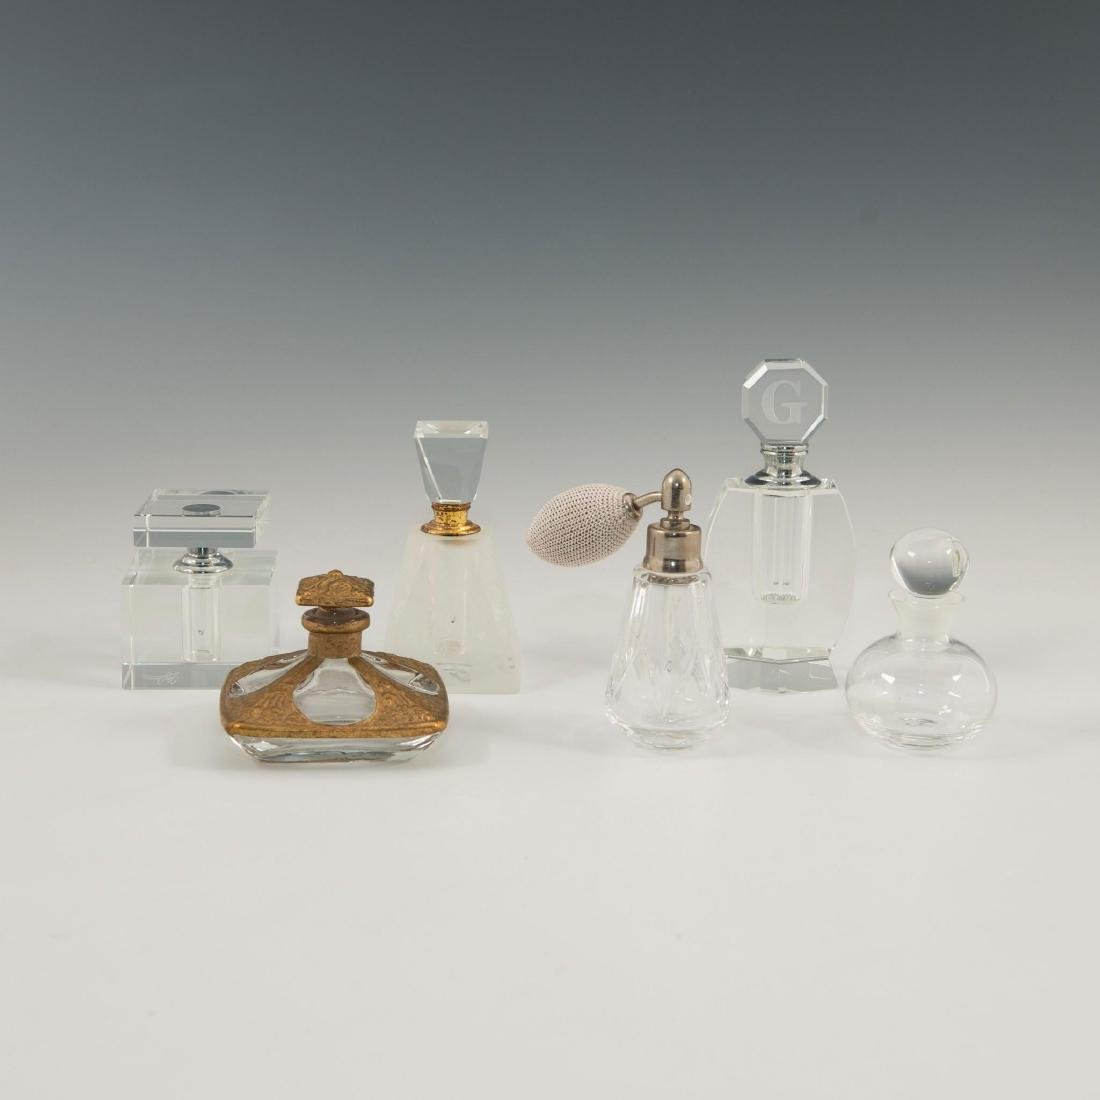 GROUP OF 12 CRYSTAL ART GLASS PERFUME BOTTLES LALIQUE - 2